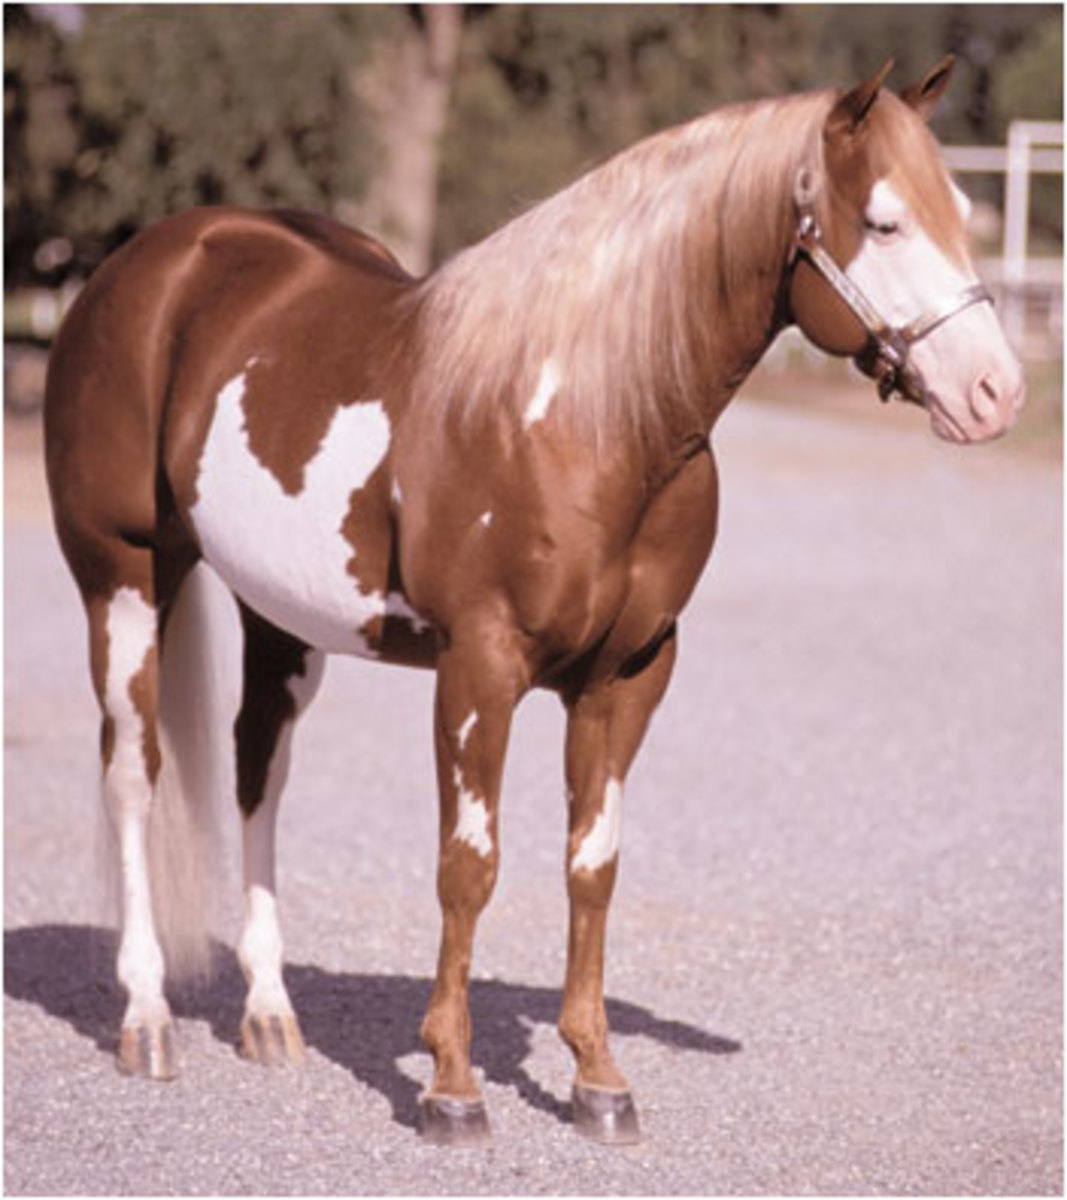 Like a Diamond is an overo.  He may carry frame overo (LWO) but appears to have the splash variation.  This could be determined by a genetic test for LWO and also by looking at the pattern on his offspring.